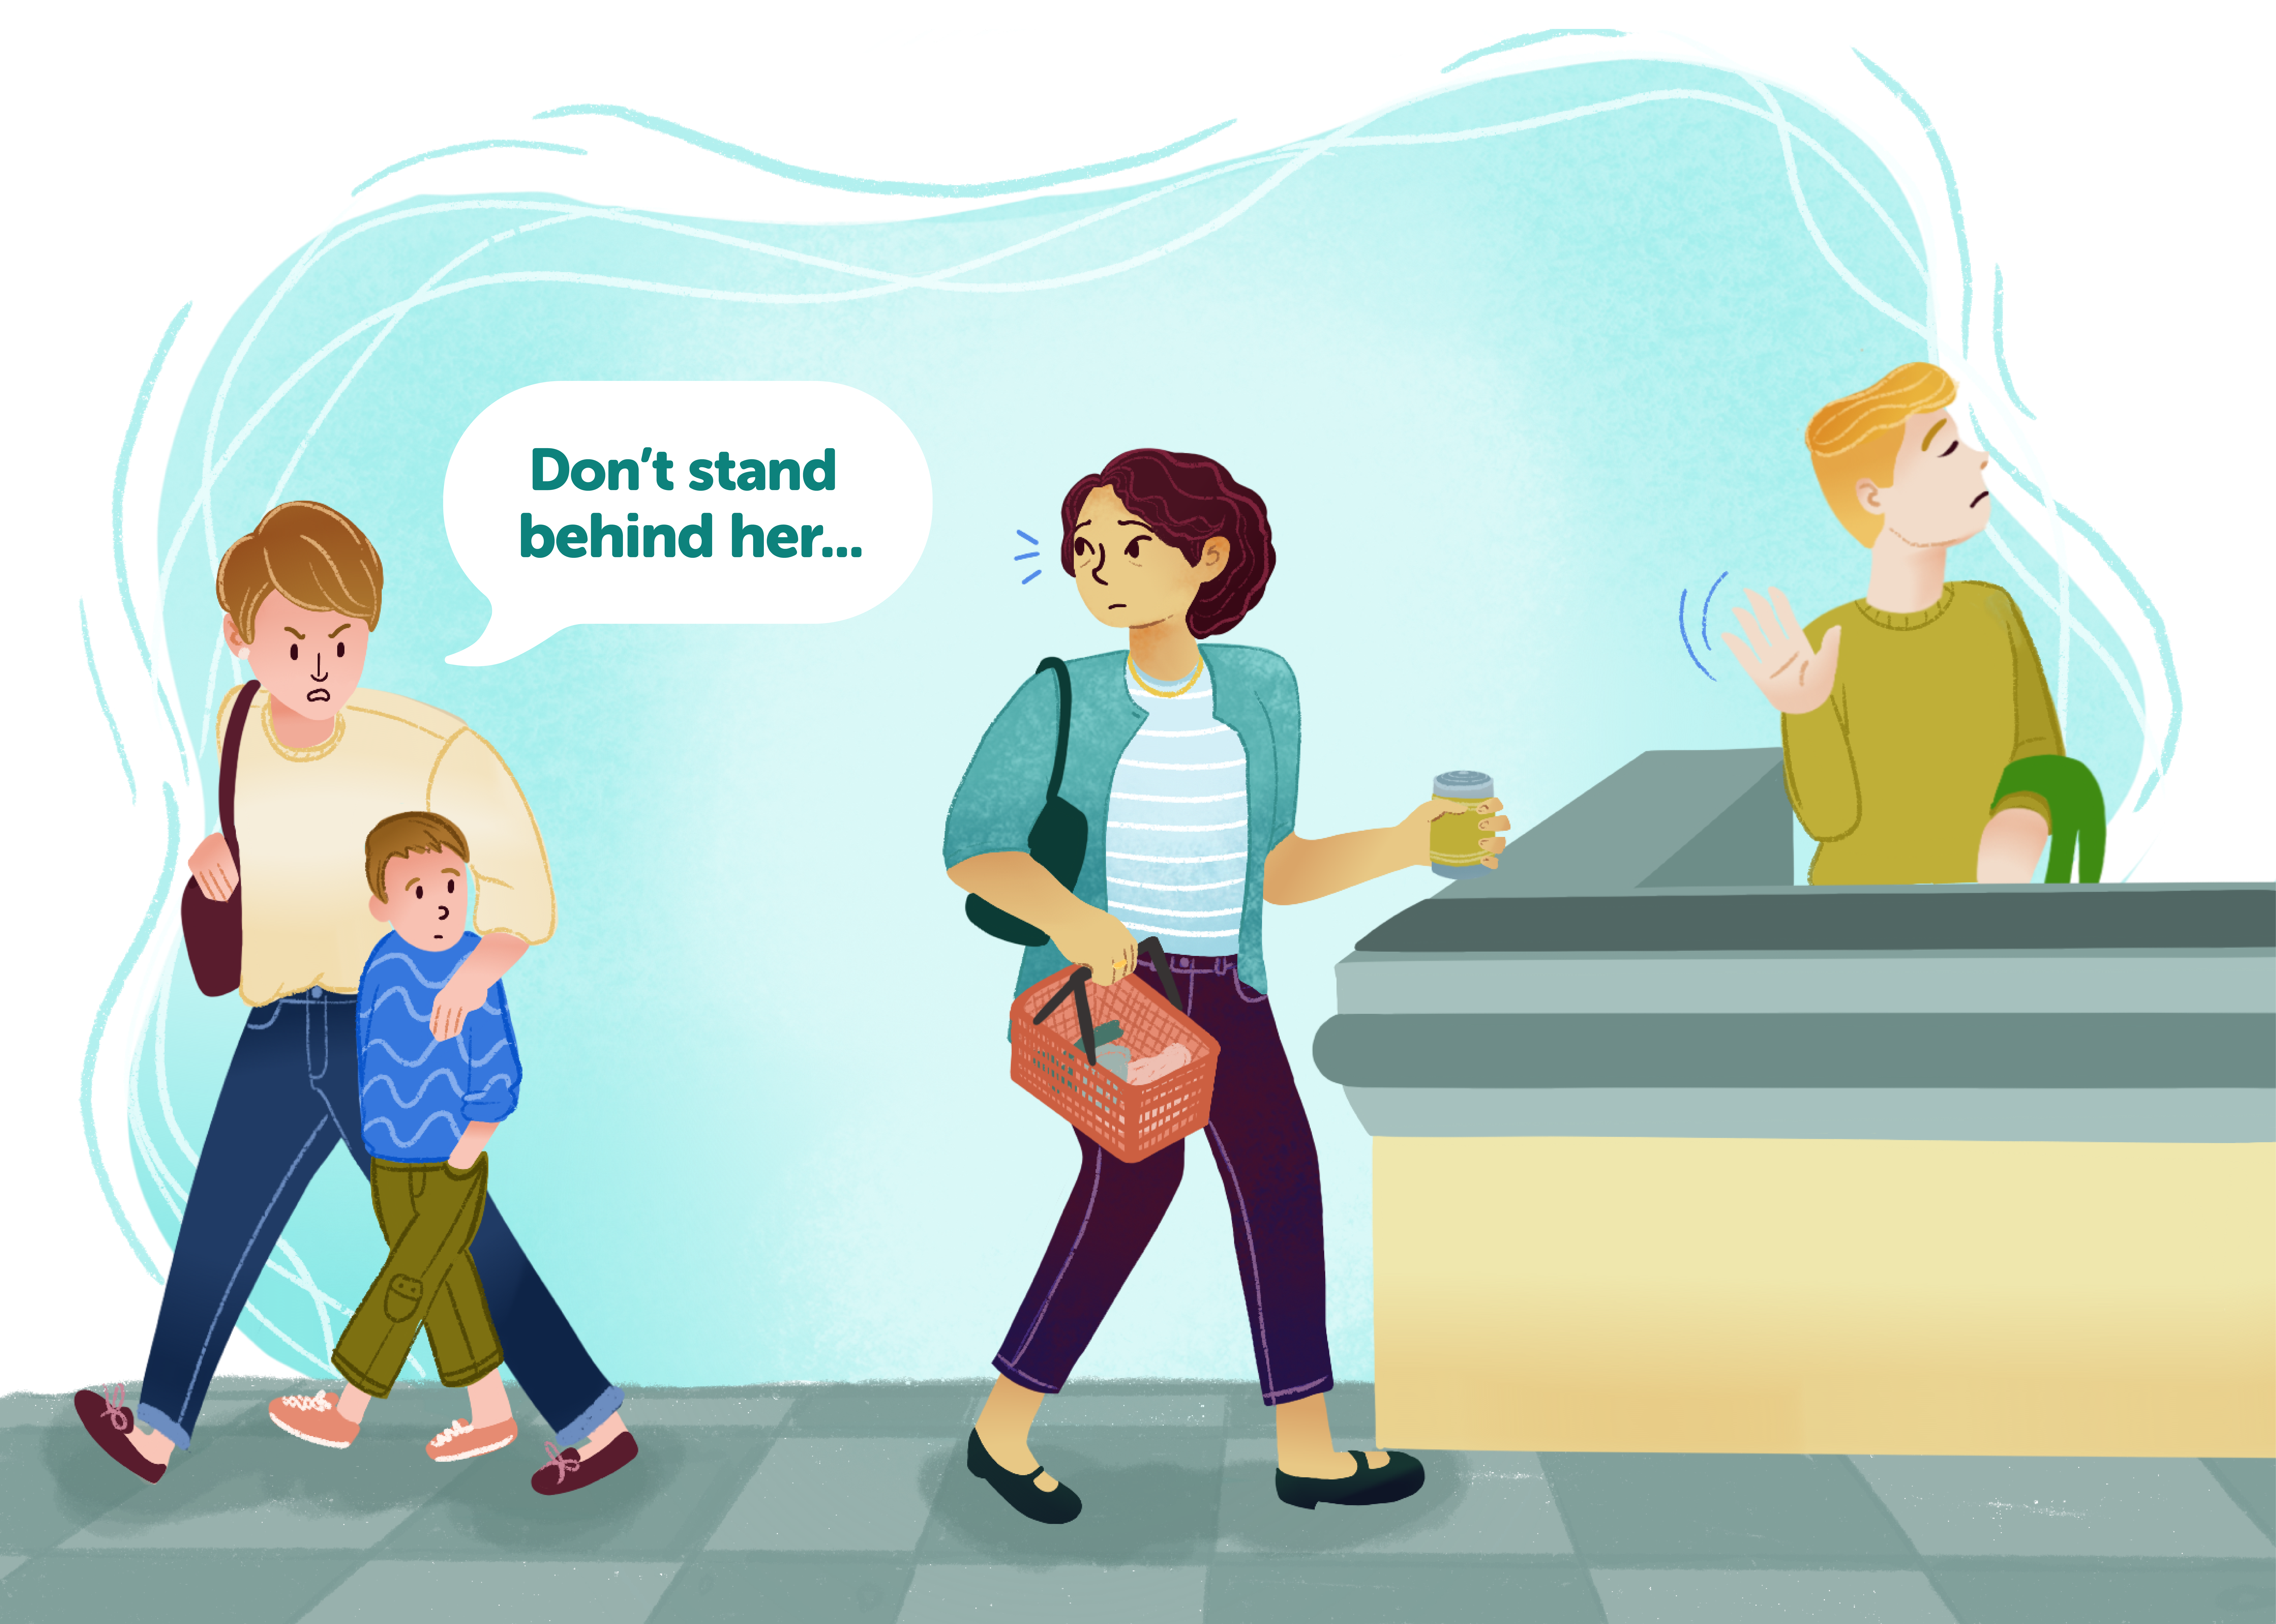 """A middle-aged woman who is visibly asian, Kate, is at a grocery store check out. She is looking to her left and seeing a white women who has her arm around her son's shoulder saying """"Don't stand behind her"""" (indicating that the white women doesn't want her son near Kate"""". On Kate's right, the cashier is shaking his hand and leaving - refusing to serve her."""